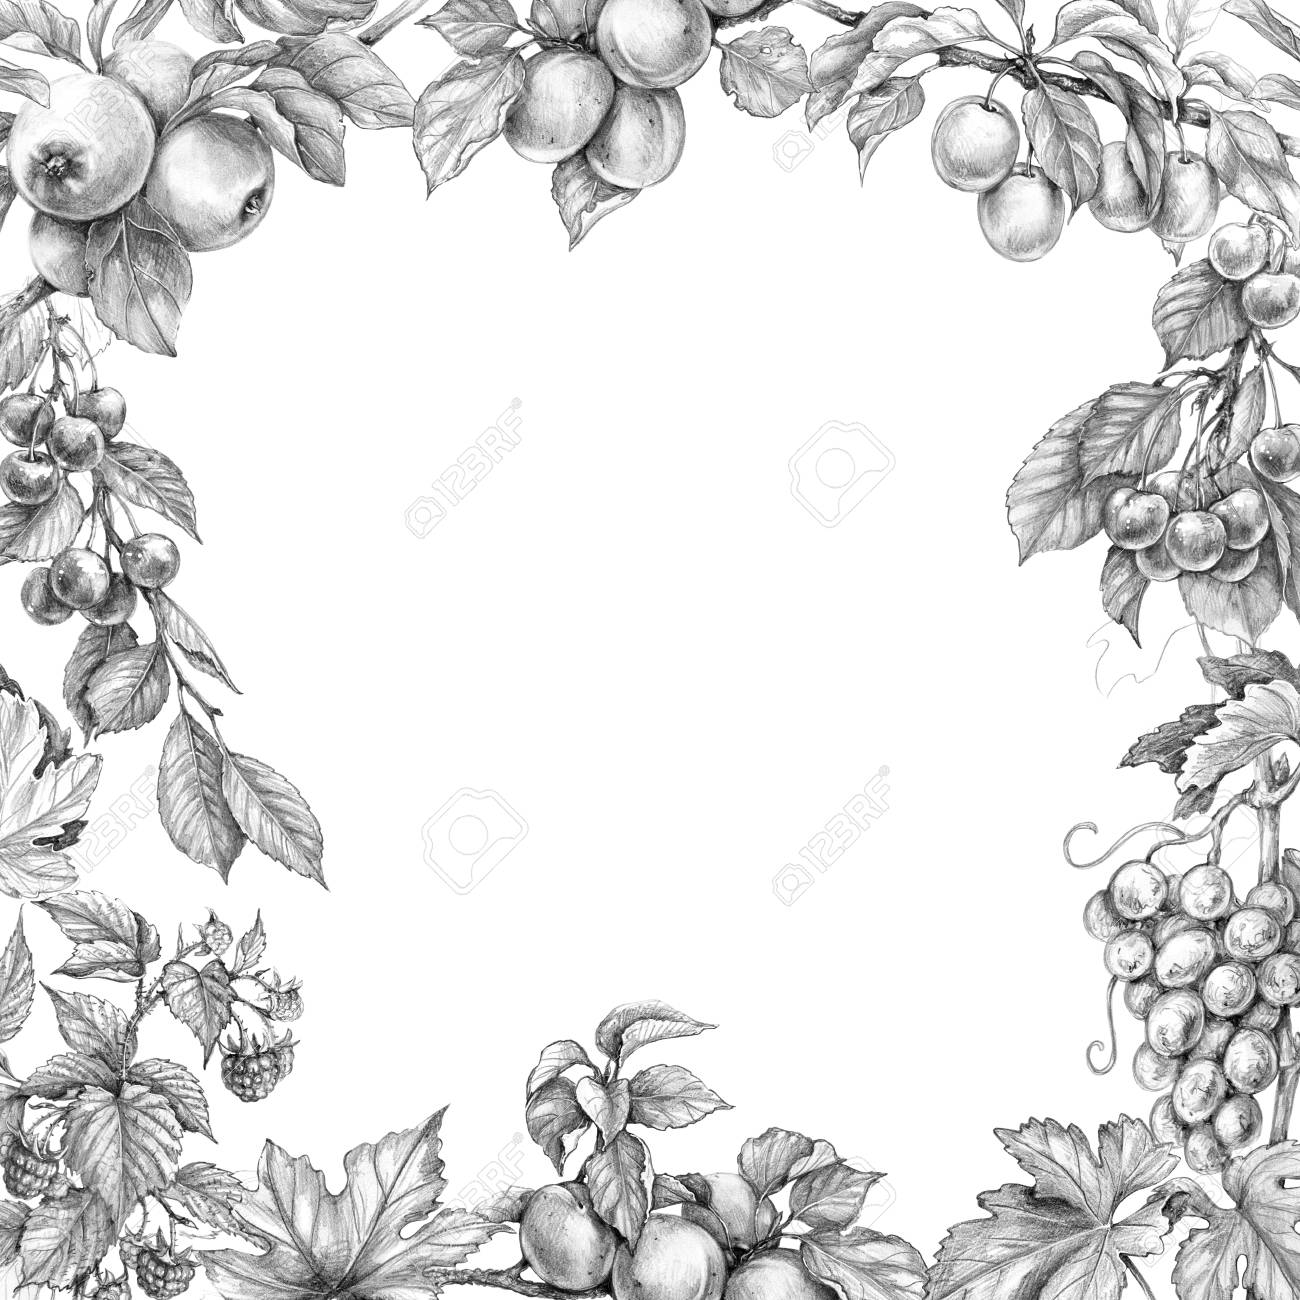 Hand drawn branches of fruit trees and bushes monochrome border made with sketch of fruits